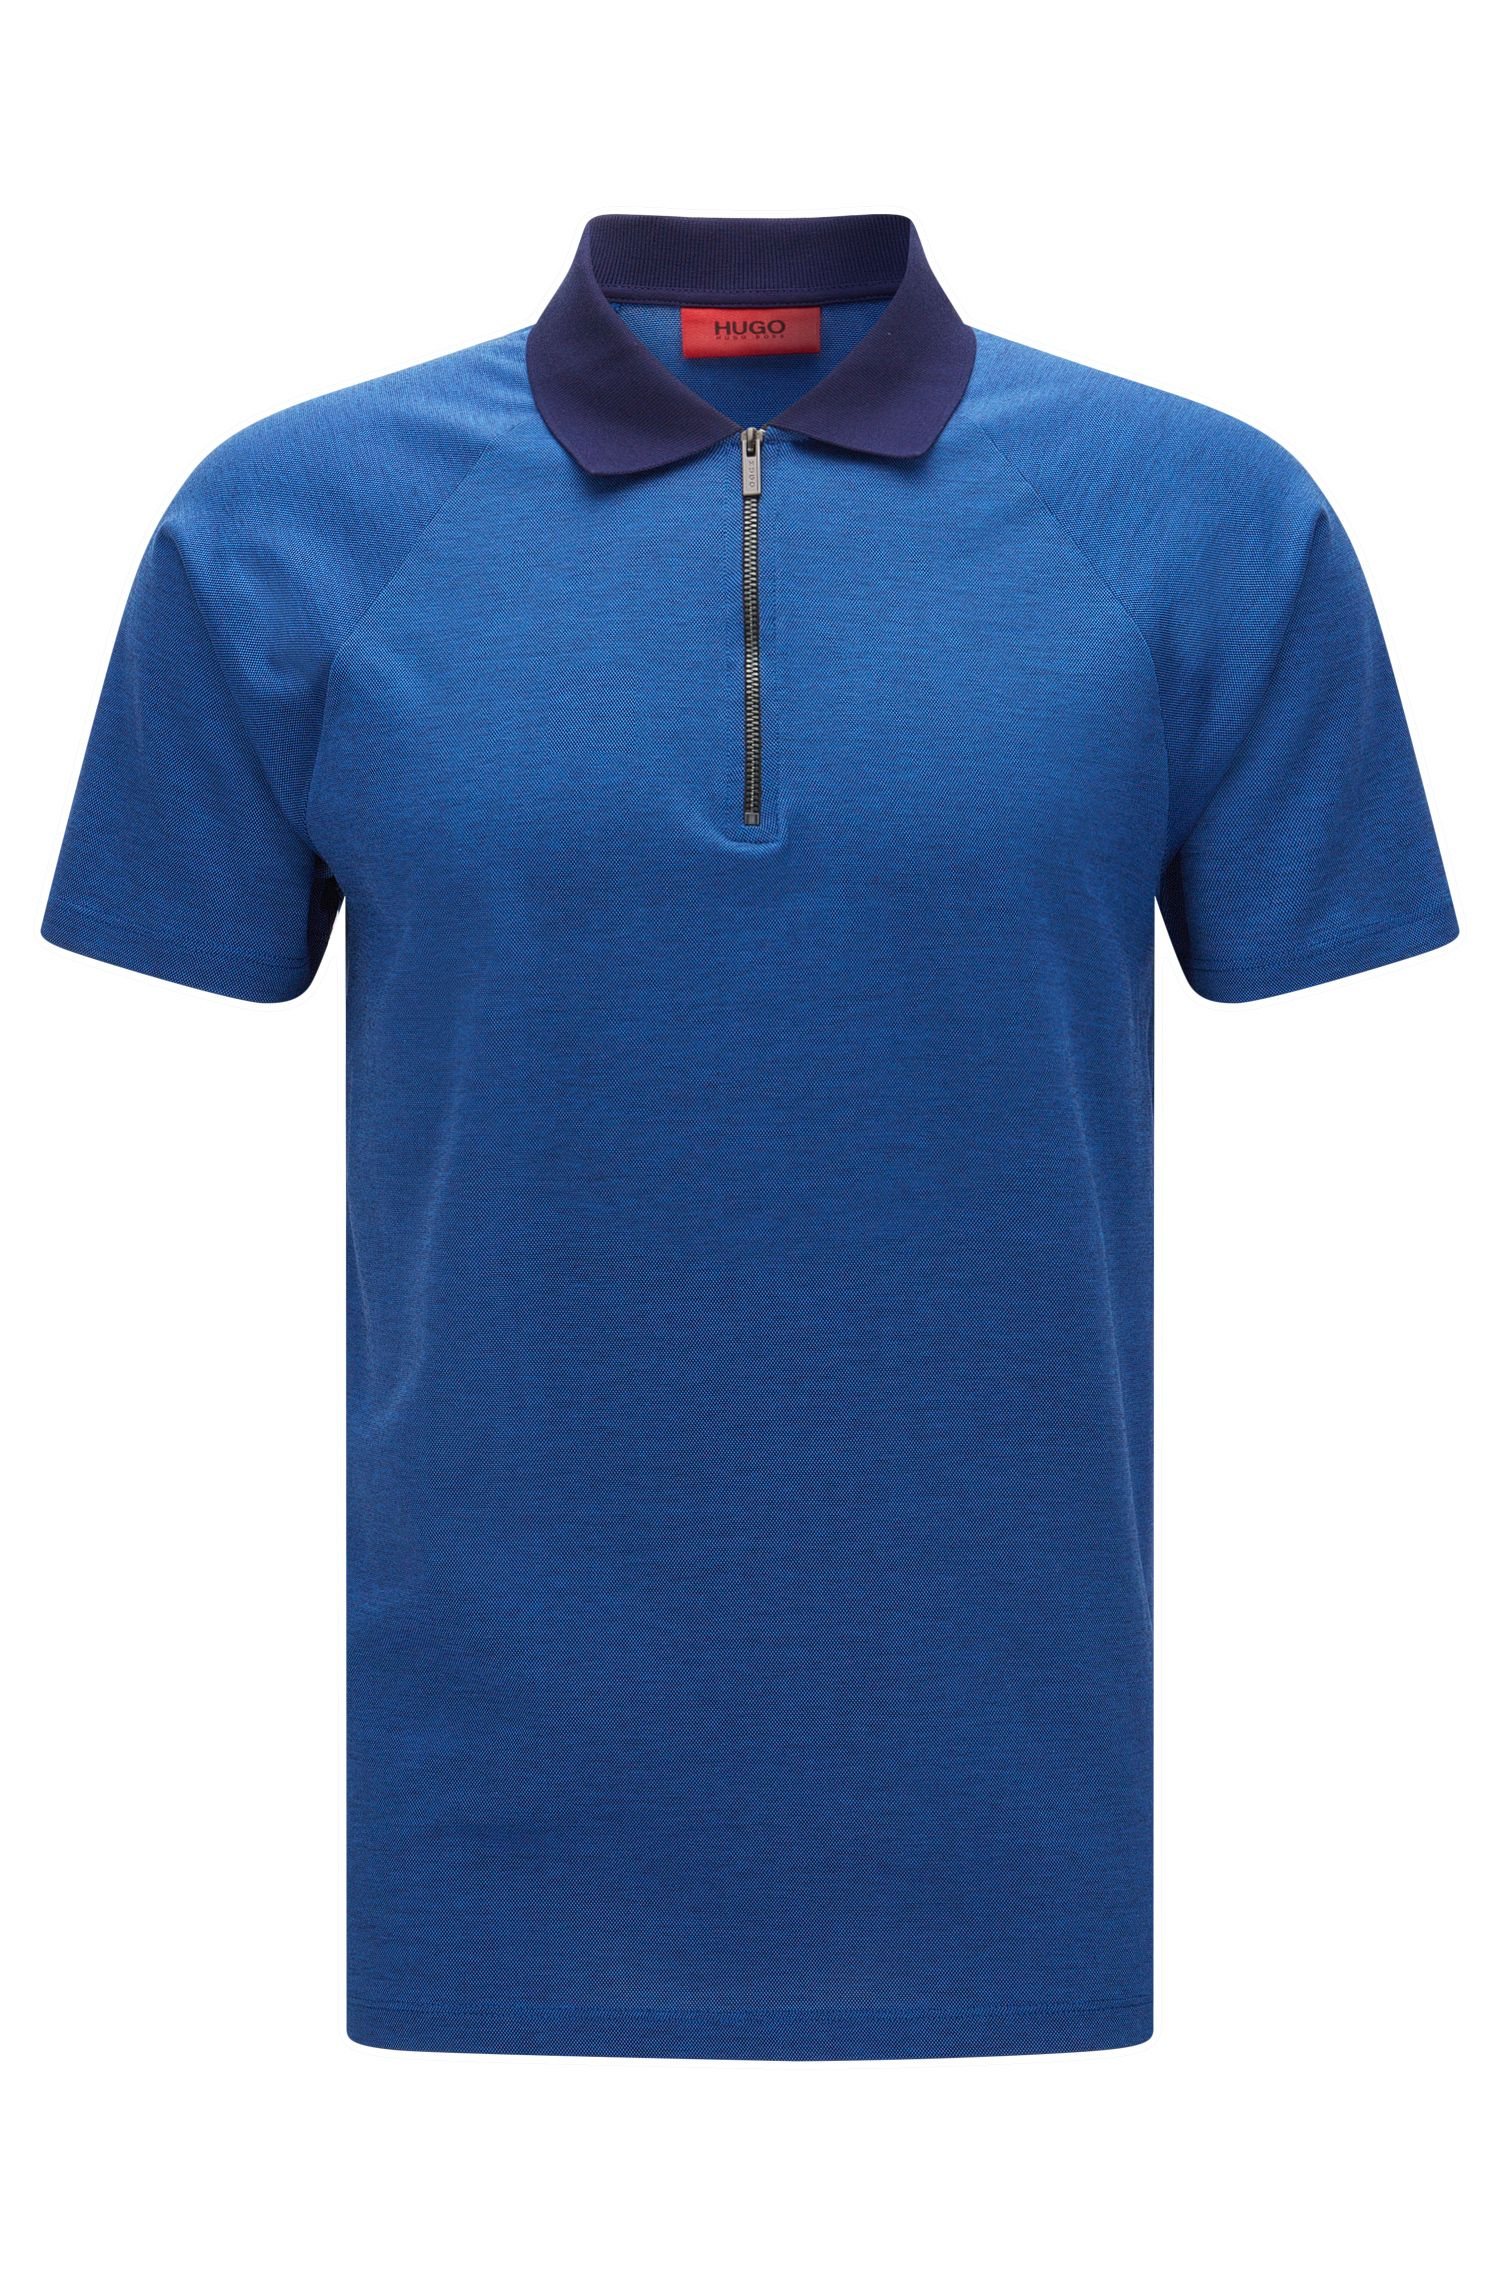 Cotton Textured Polo Shirt, Slim Fit | Dericsson